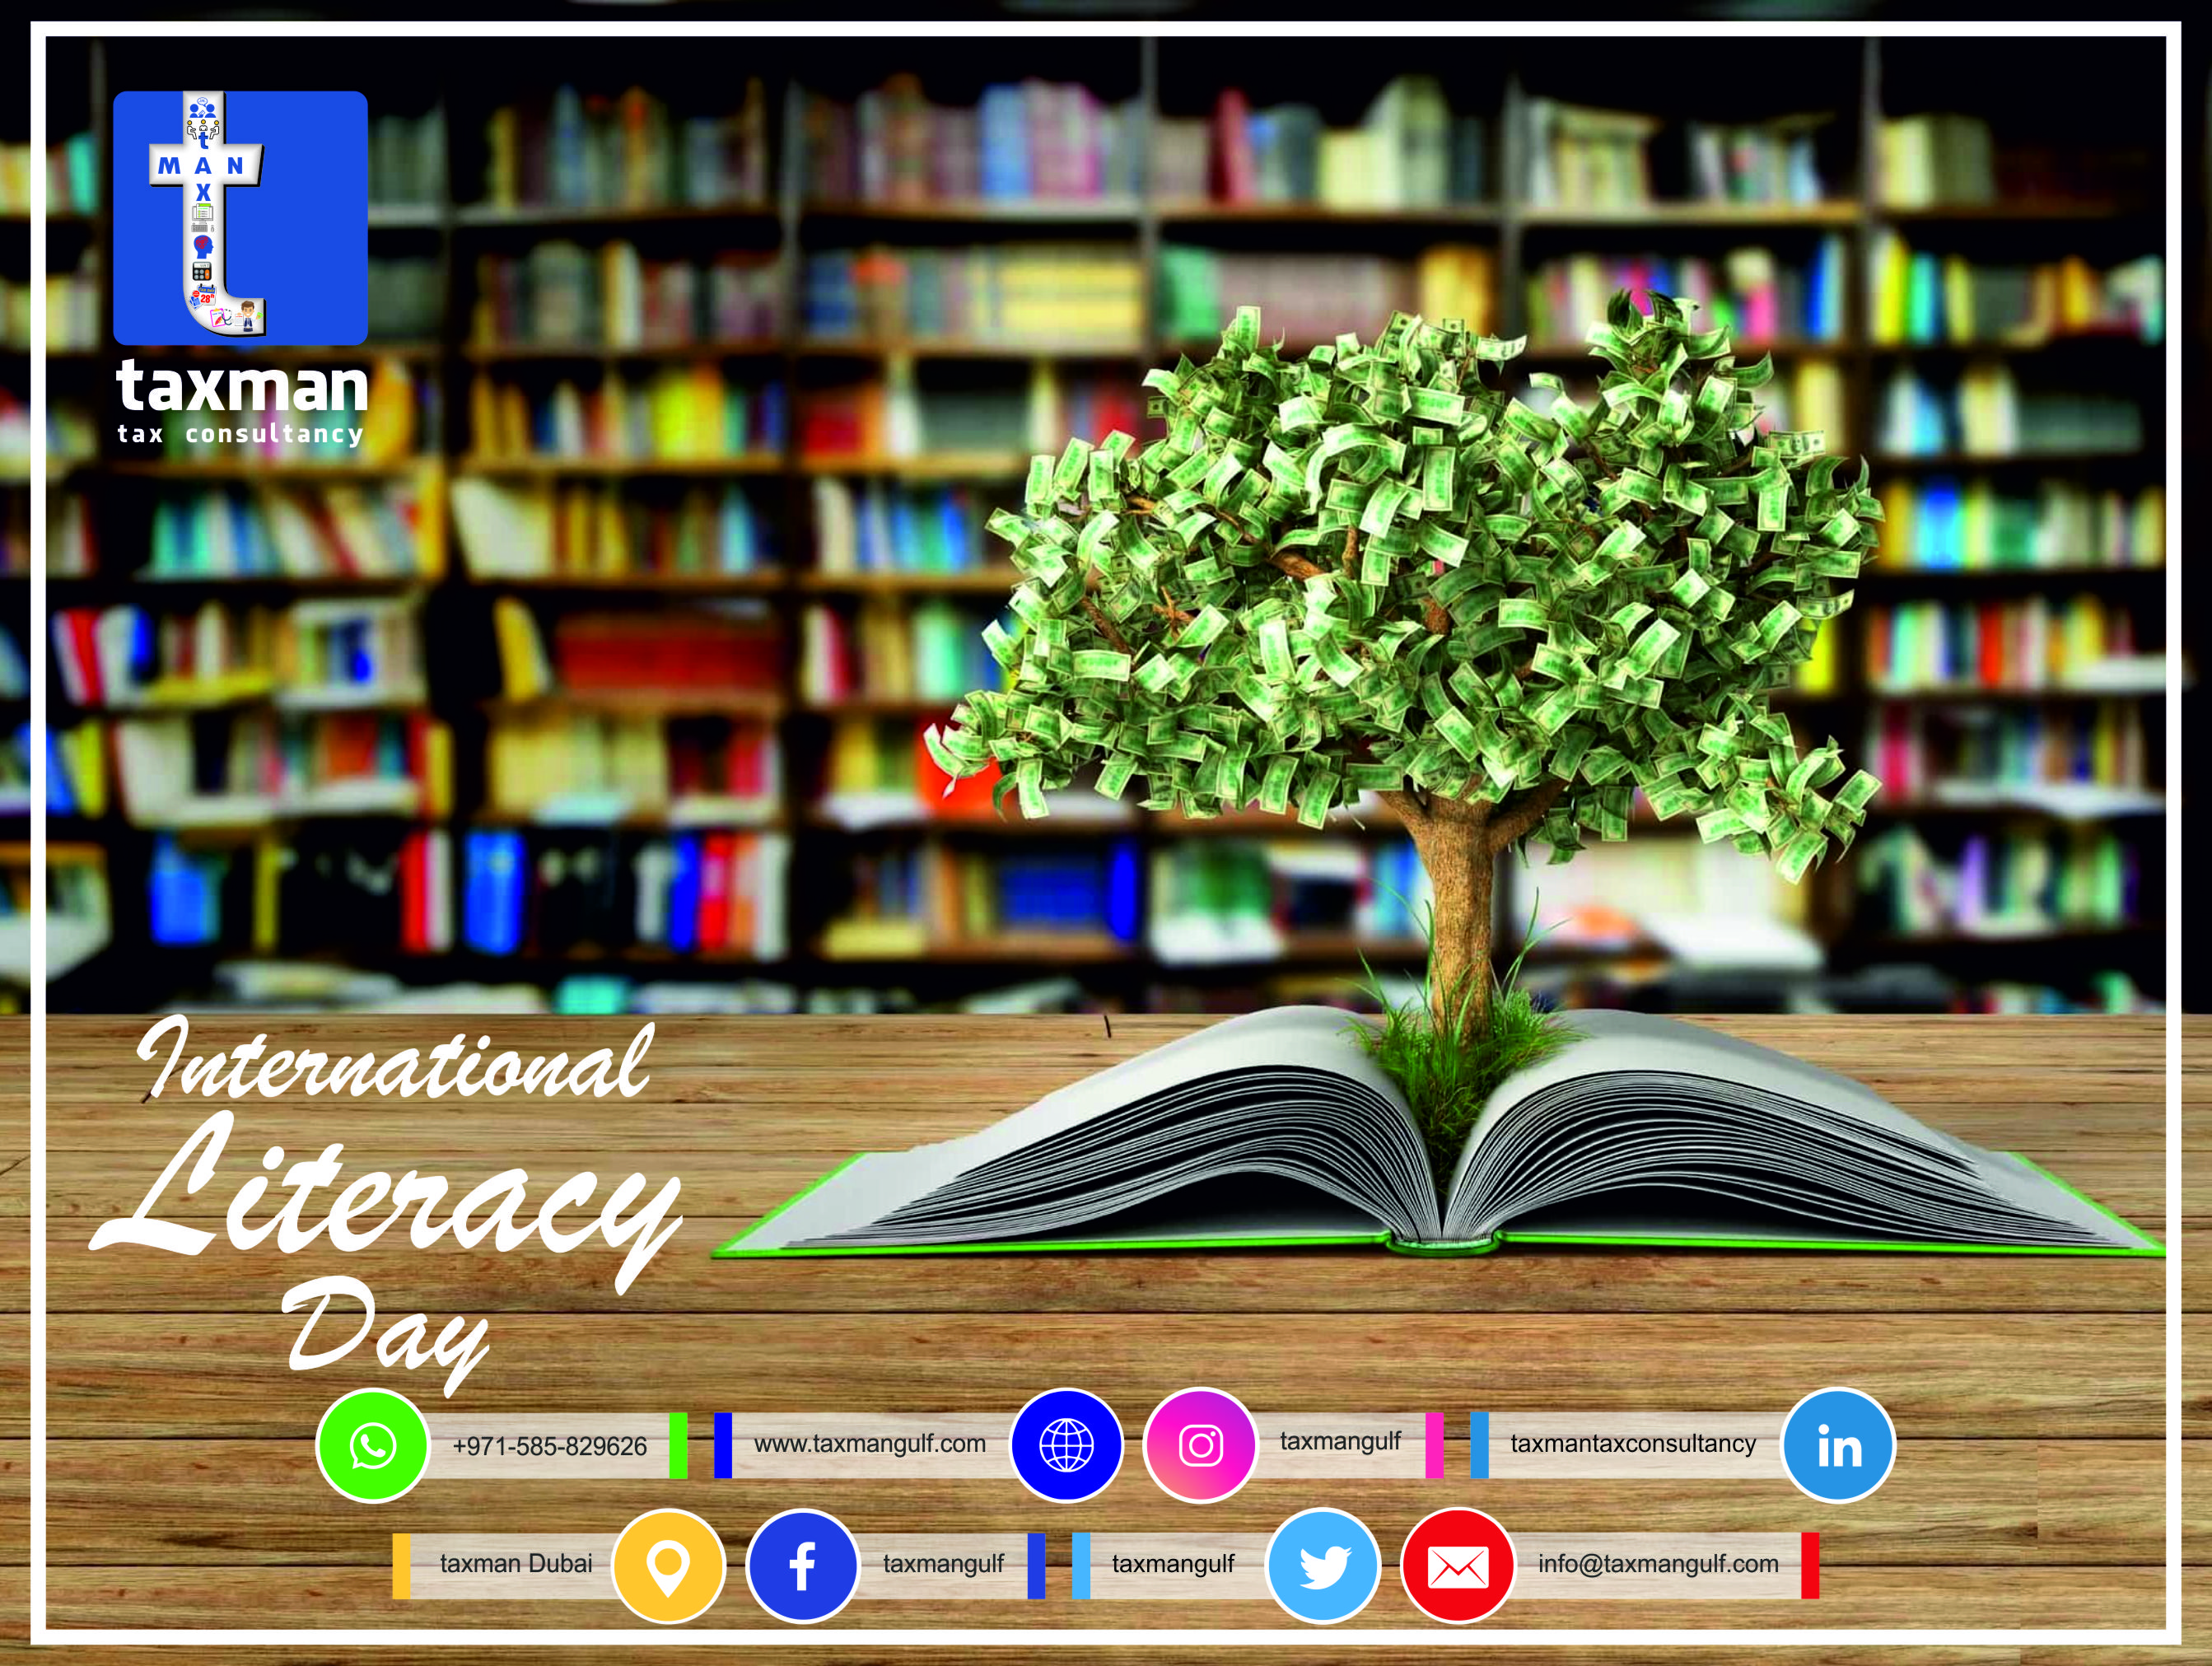 𝗧𝗮𝘅𝗺𝗮𝗻 𝗧𝗲𝗮𝗺 takes a sincere bow to all those who helped to gain this 𝗶𝗻𝘃𝗮𝗹𝘂𝗮𝗯𝗹𝗲 𝘁𝗿𝗲𝗮𝘀𝘂𝗿𝗲. #internationalliteracyday2k20 #postoftheday #internationalliteracydayactivities #internationalliteracydayinfographics #internationalliteracyfoundation #internationalliteracytrust #taxmangulf #teamwork #togetherwecan #letsgrowtogether